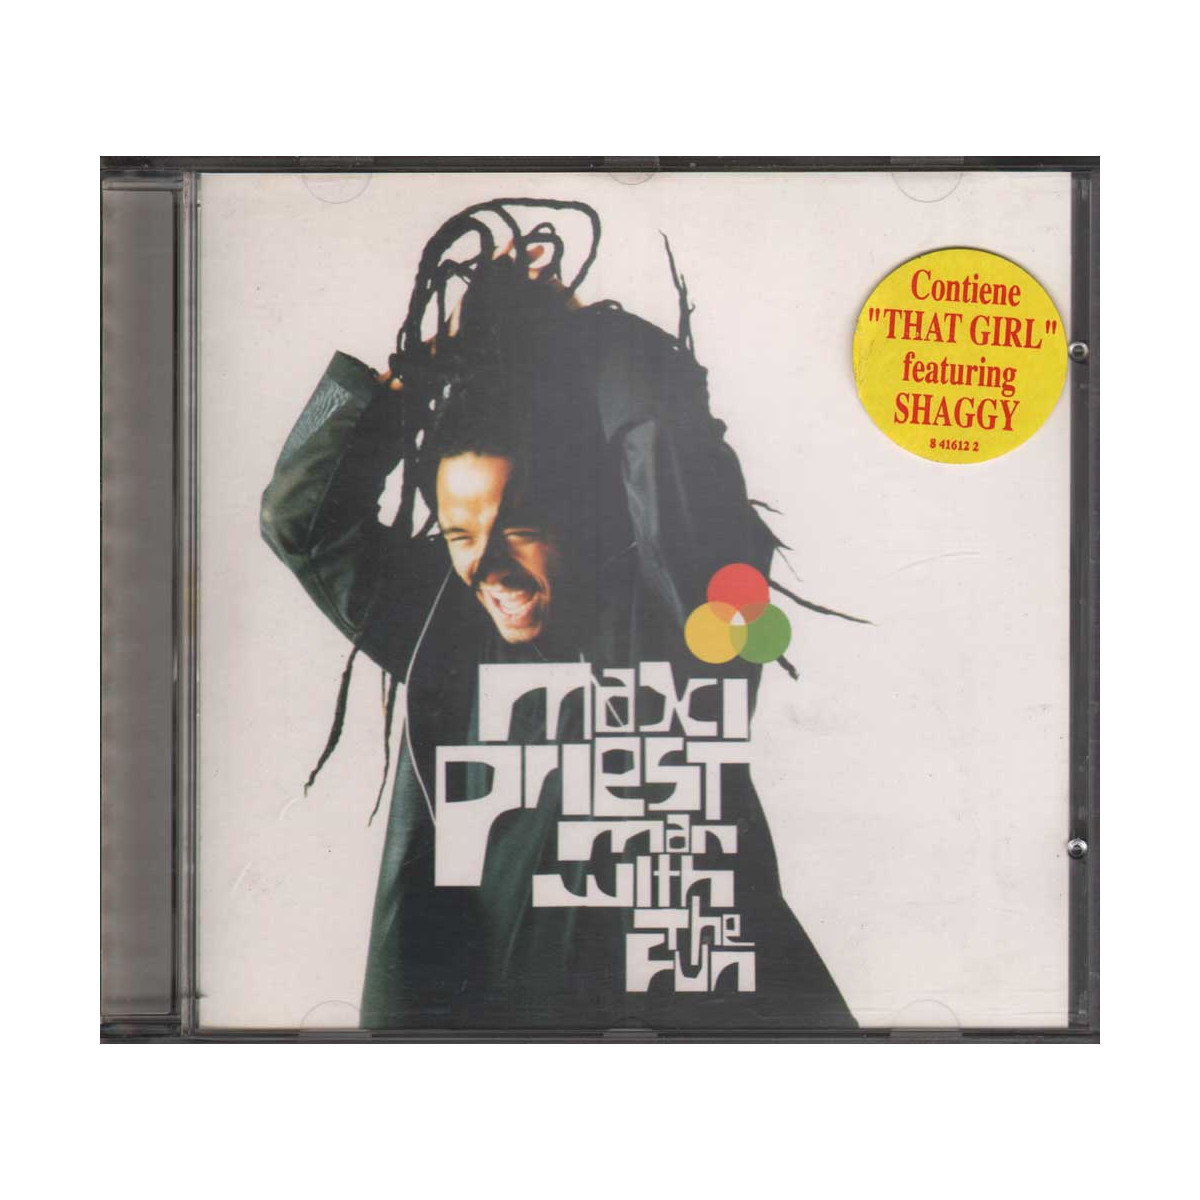 Maxi Priest CD Man With The Fun Nuovo 0724384161224